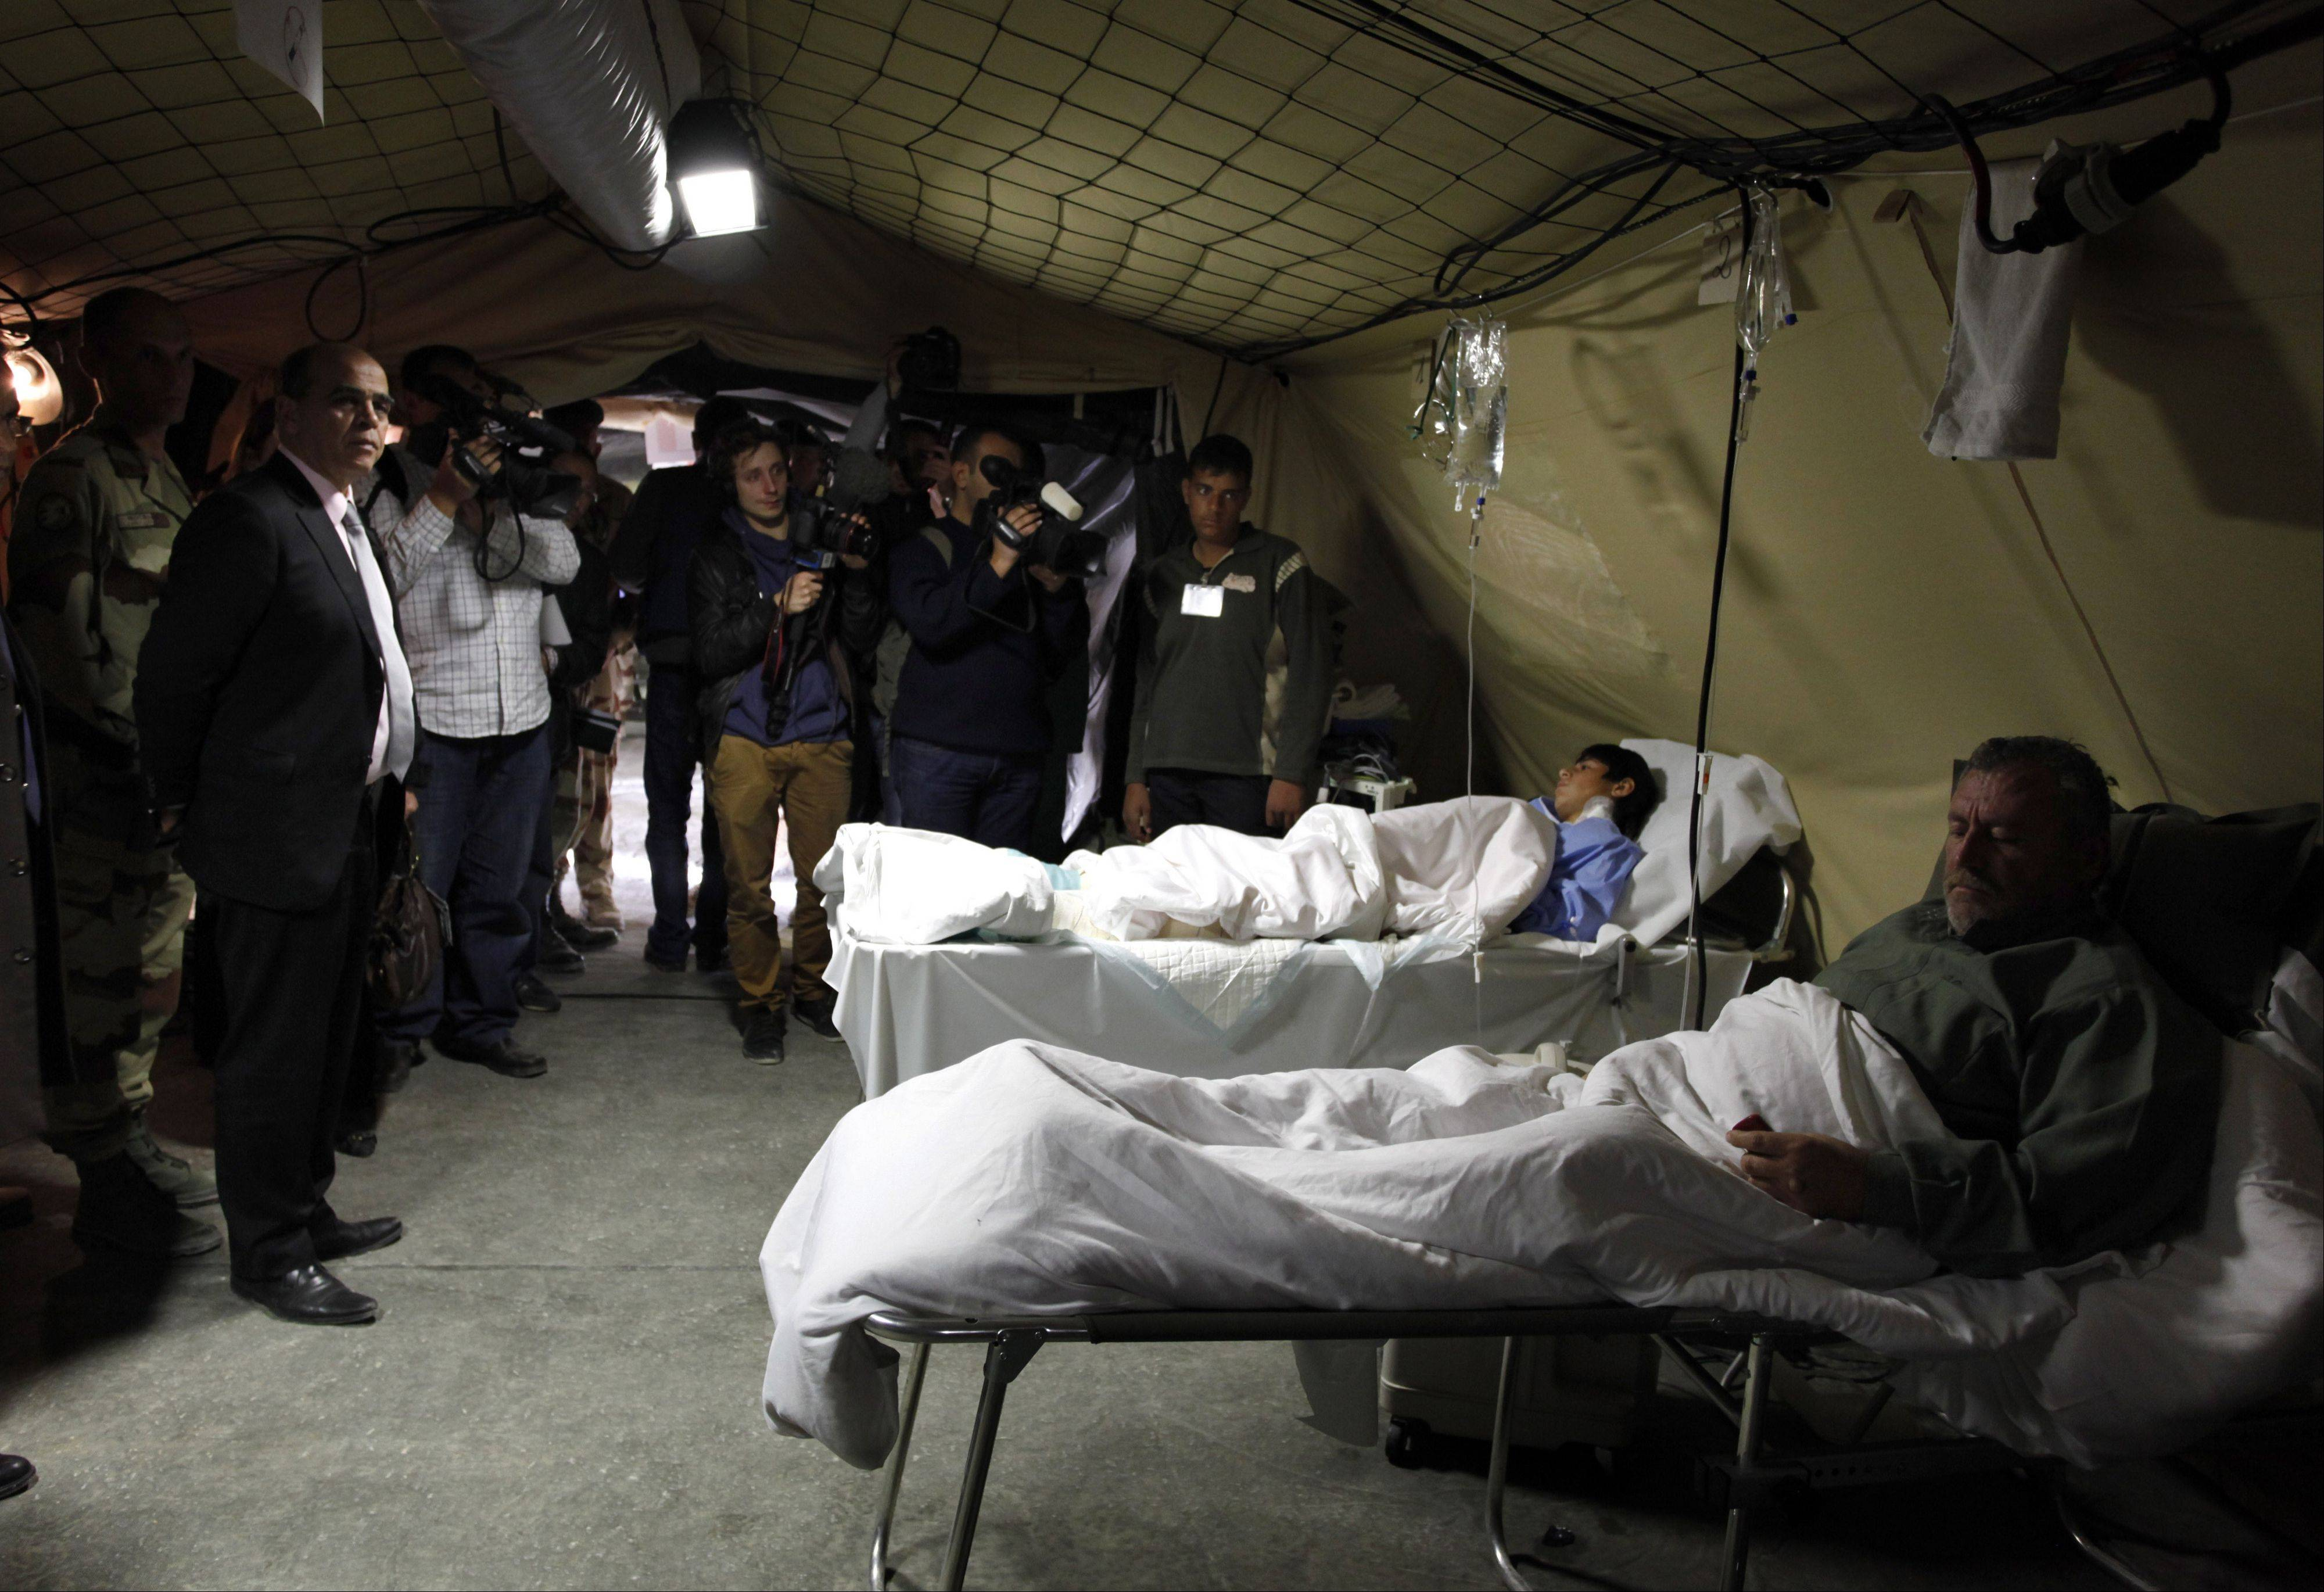 Kader Arif, French Minister for Veteran affairs, second from left, visits Tuesday one of the tents of the French military mobile hospital at Zaatari Syrian refugee camp, near the Syrian border in Mafraq, Jordan.